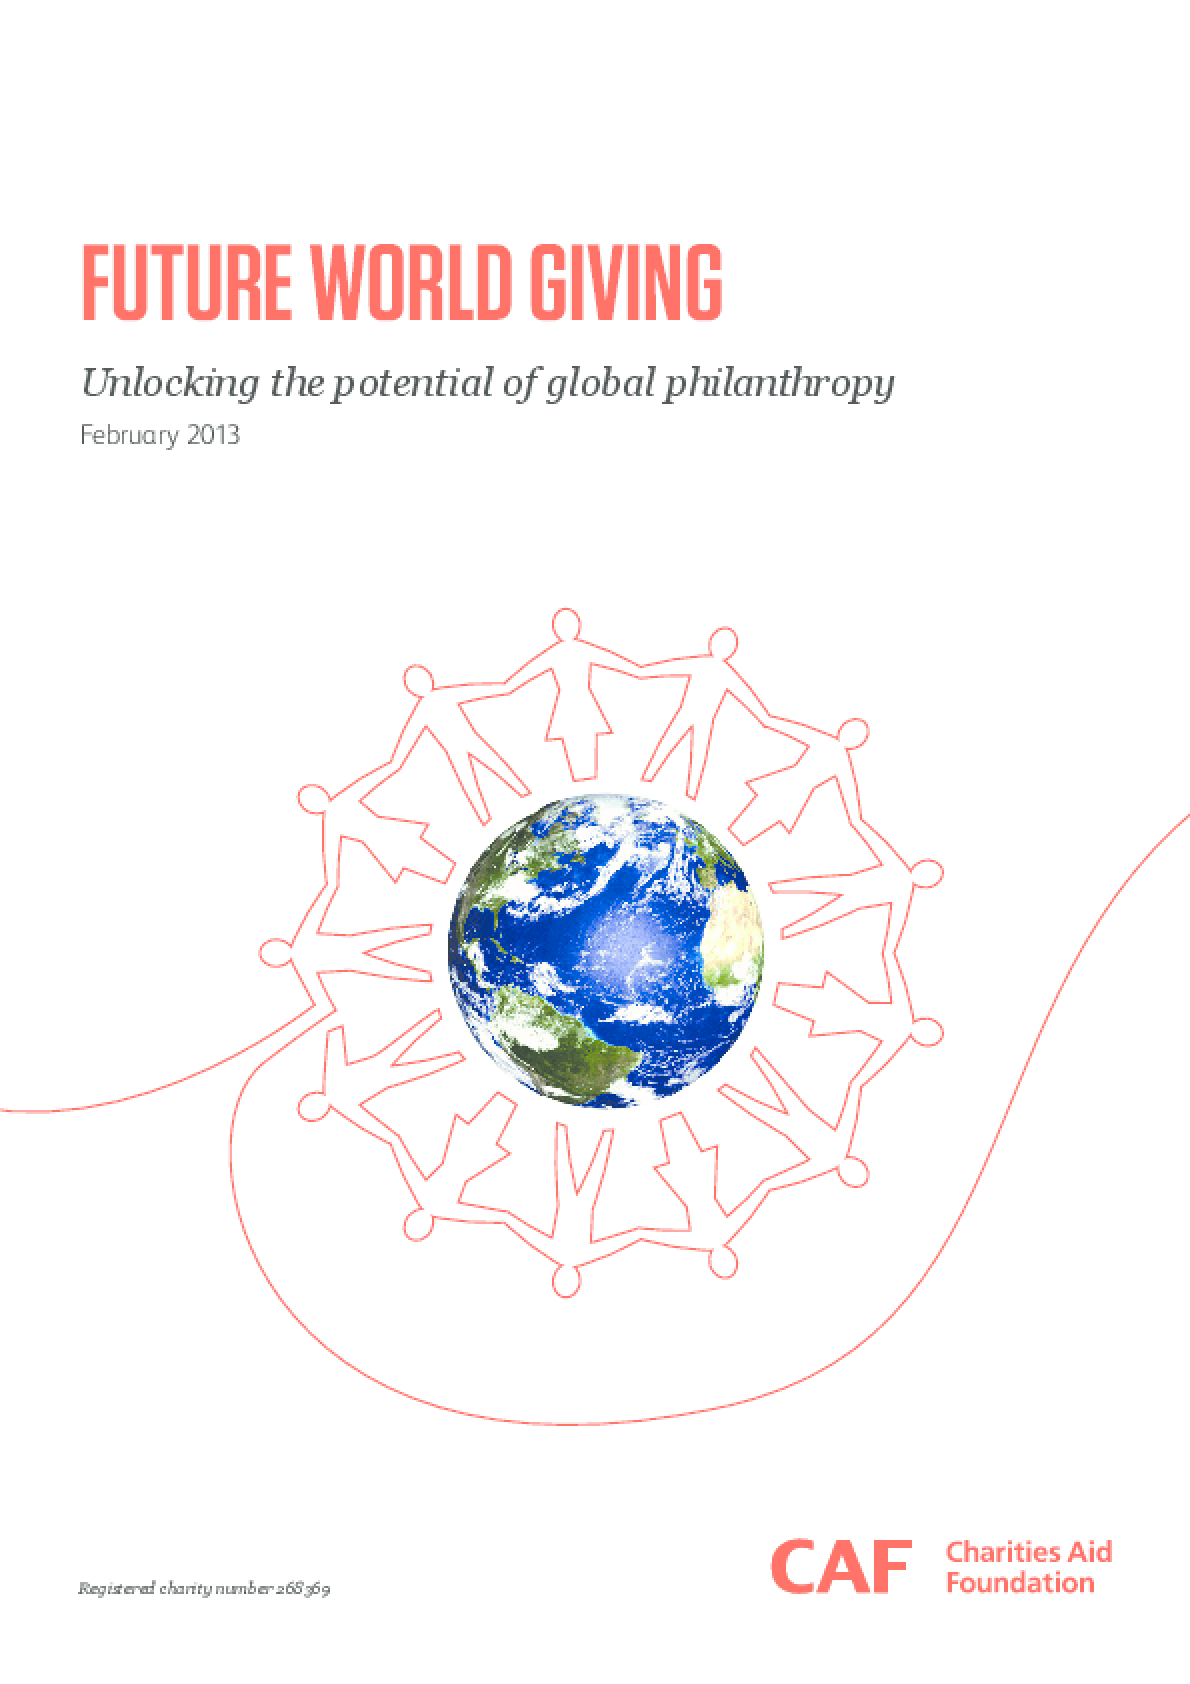 Future World Giving: Unlocking the Potential of Global Philanthropy